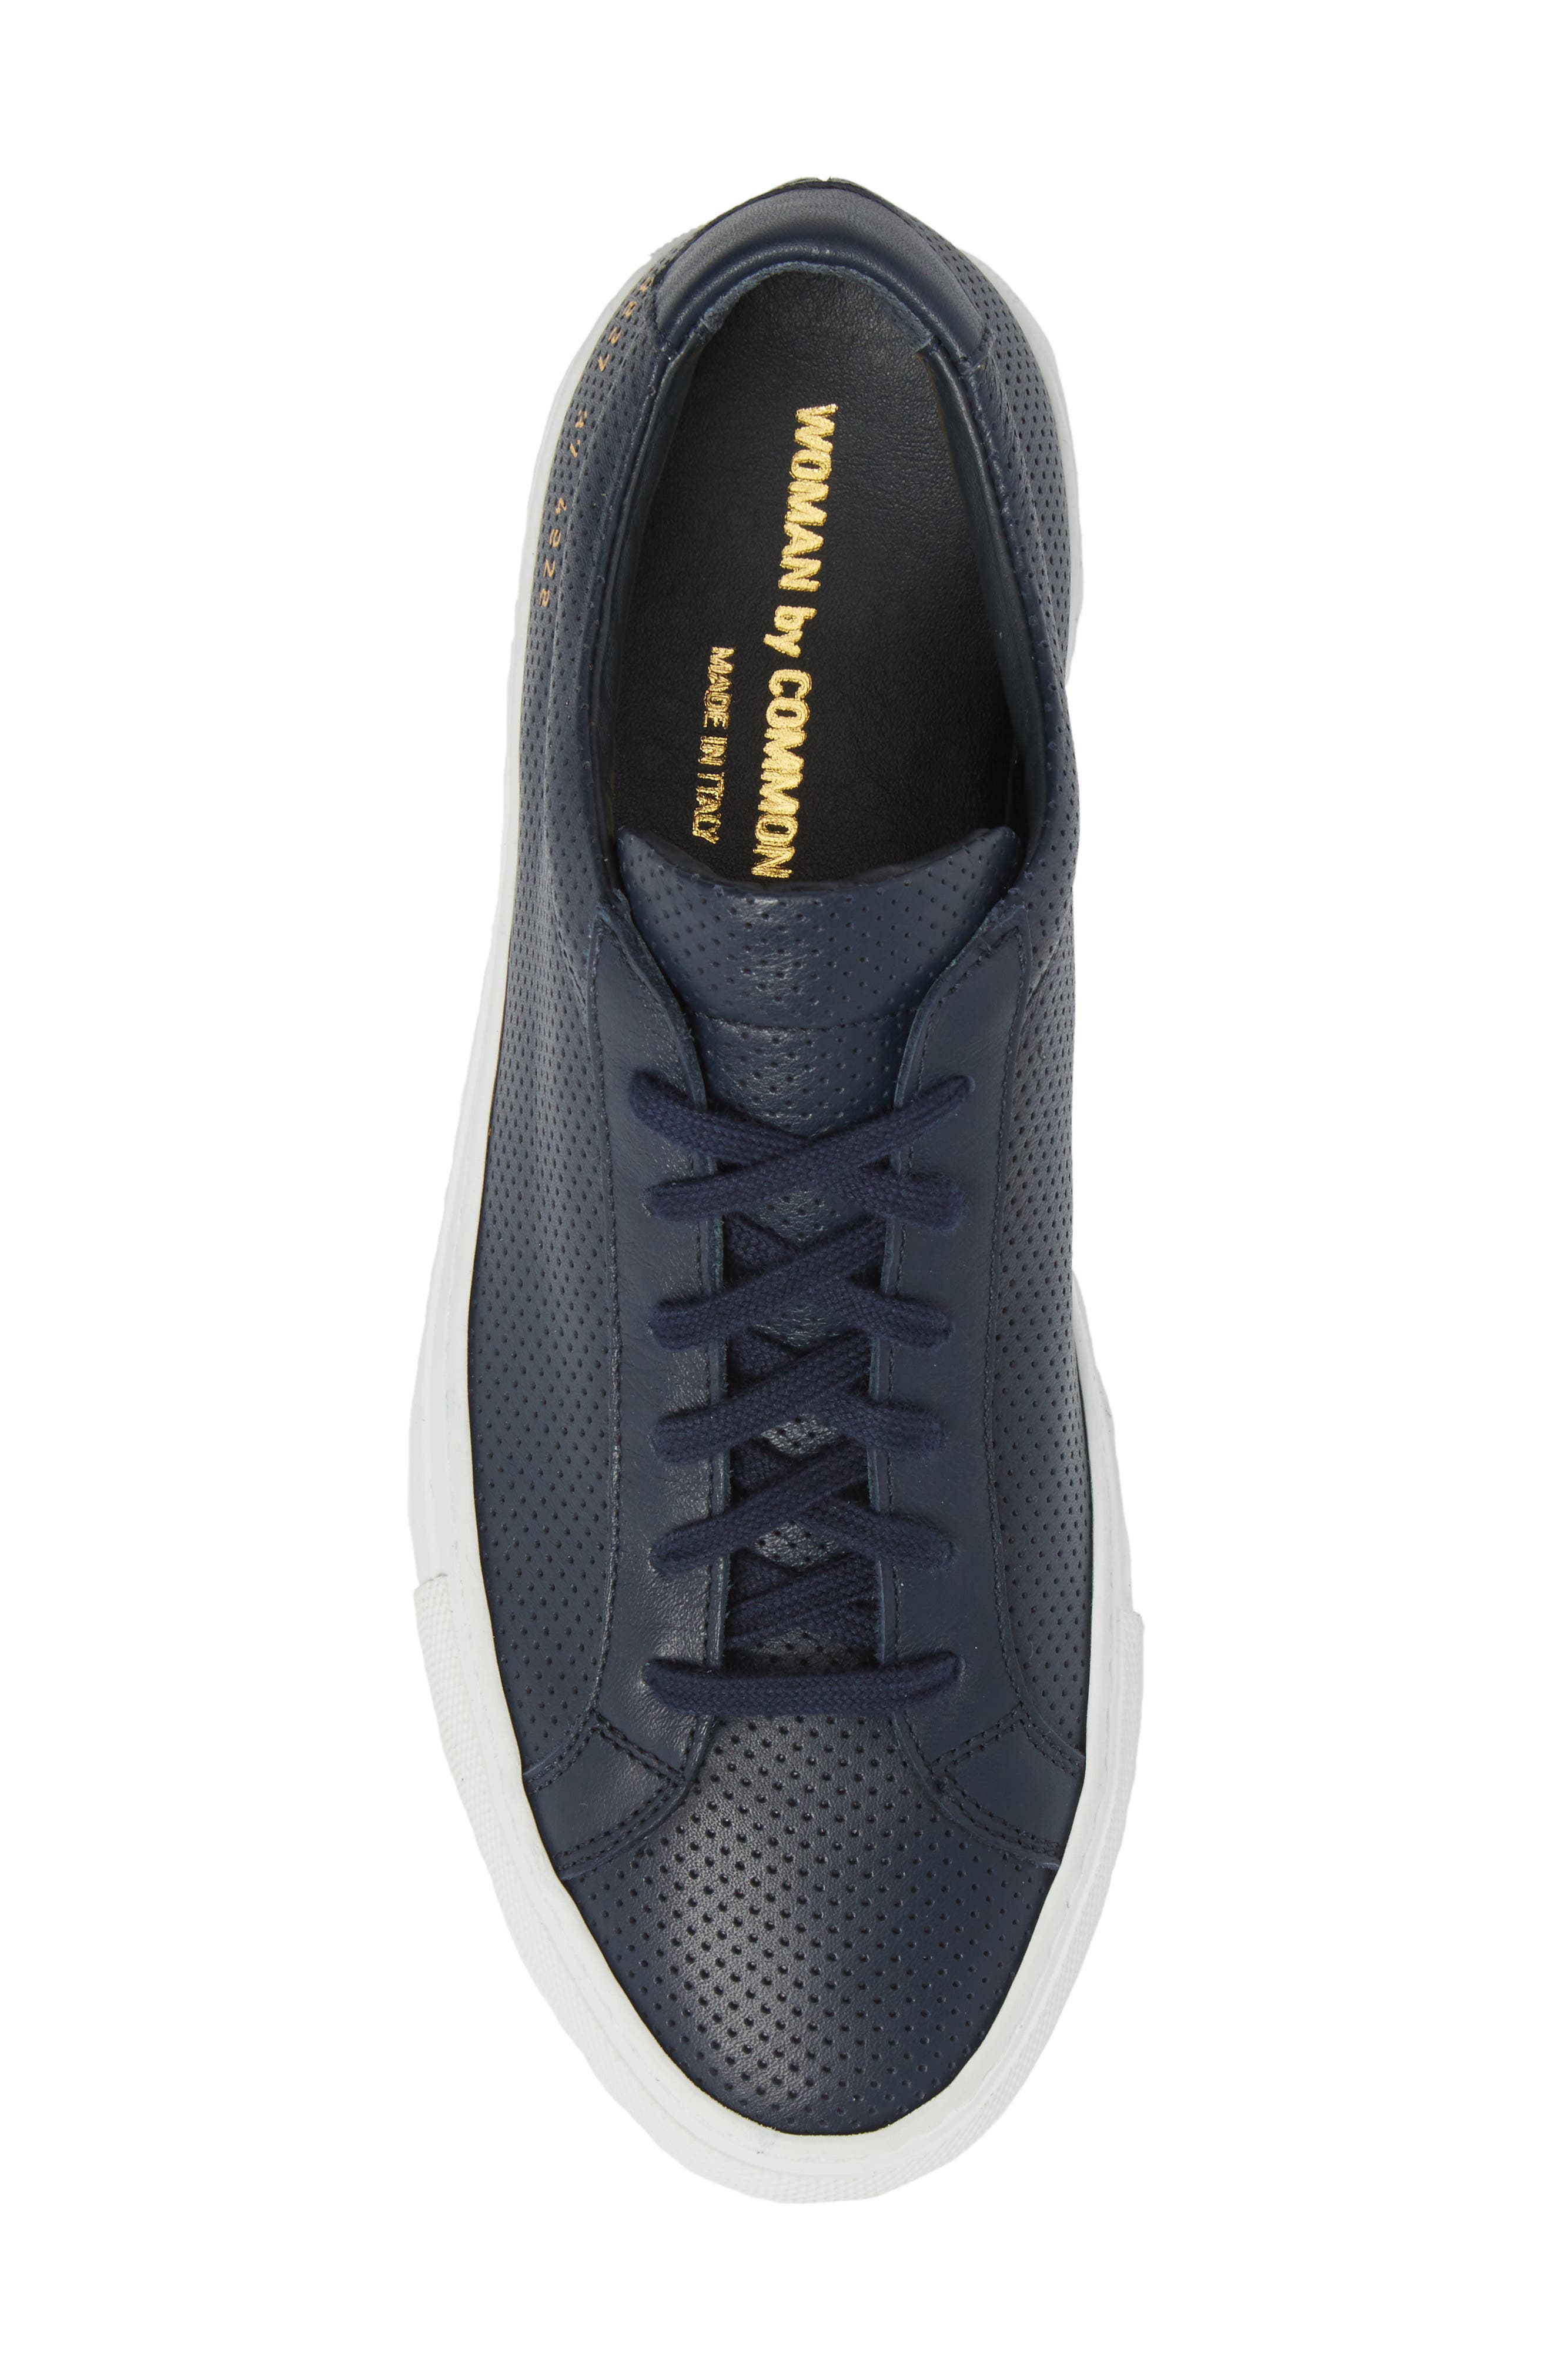 Original Achilles Perforated Low Sneaker,                             Alternate thumbnail 5, color,                             Navy